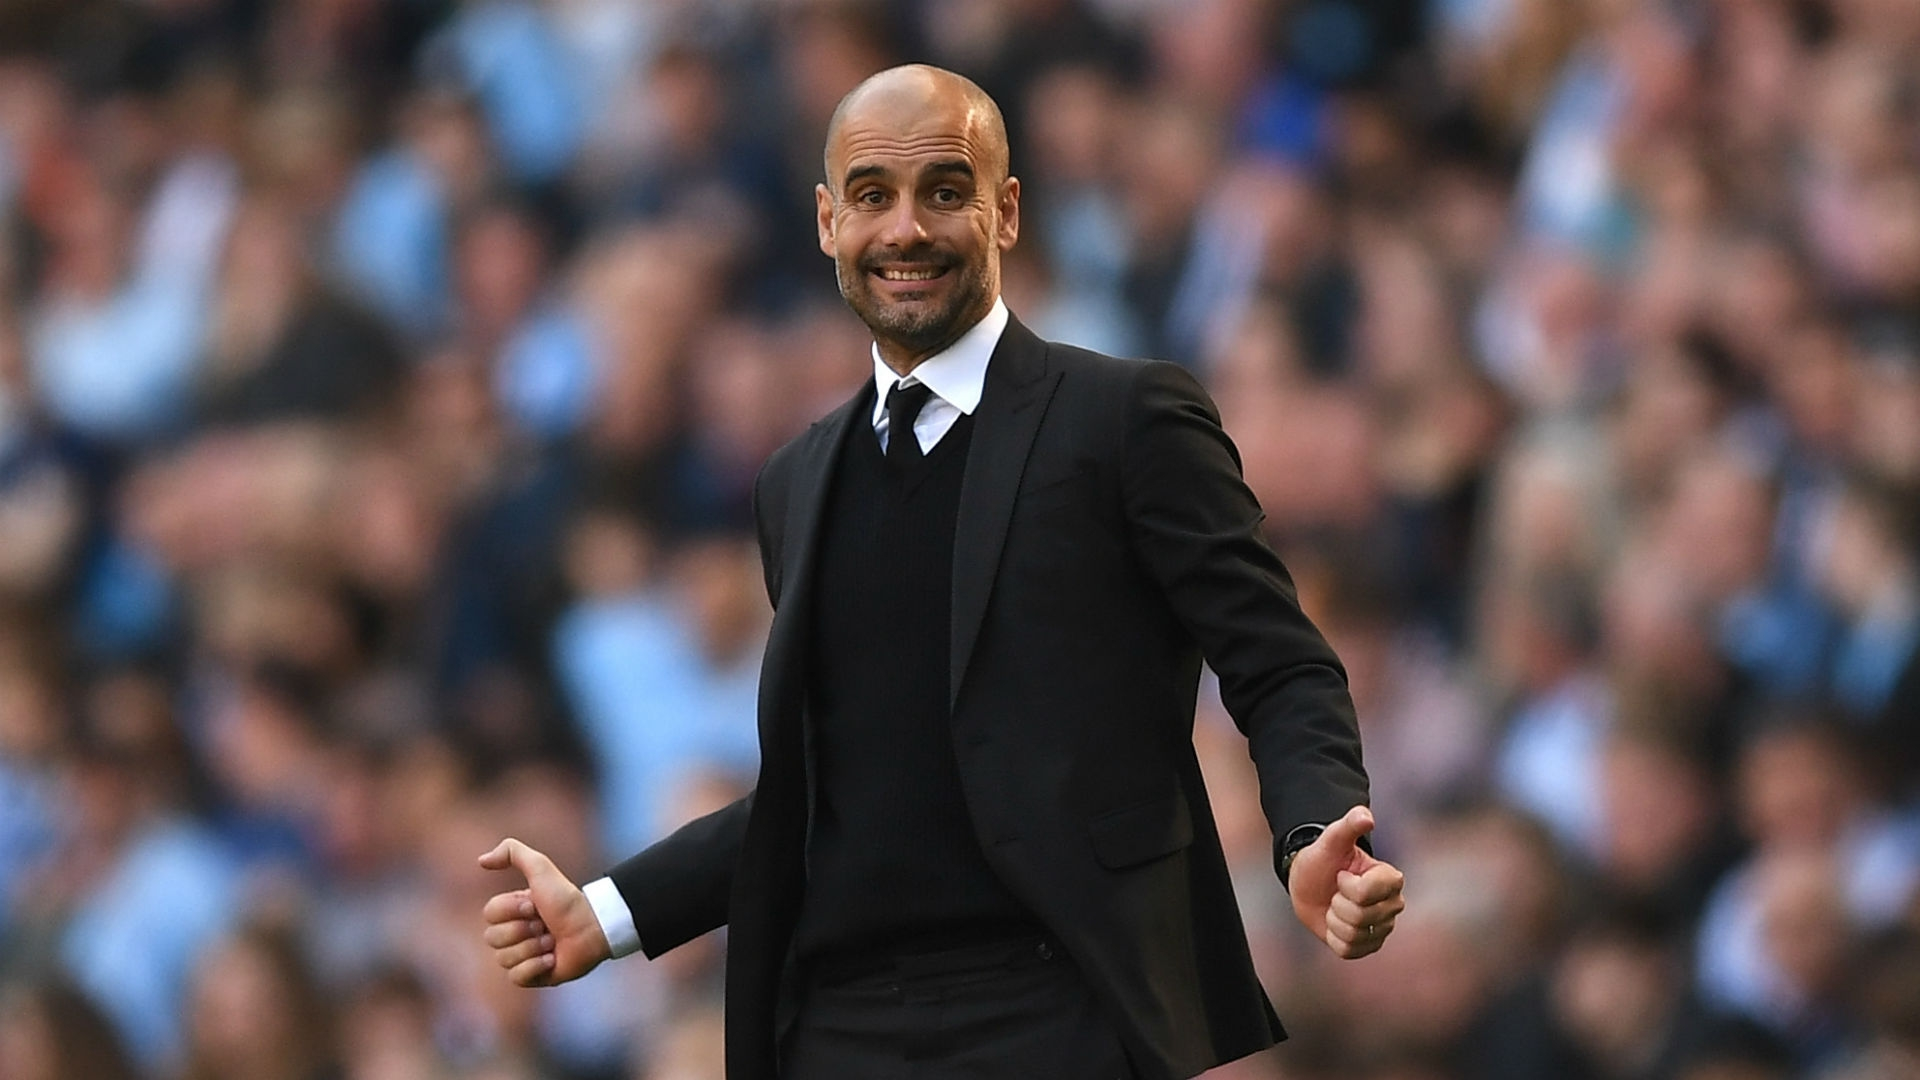 Is Manchester City a great team? Guardiola believes so. However, he warns fans to not expect the club to be on the same level as Barcelona or Real Madrid without enough time to build the club's strength.